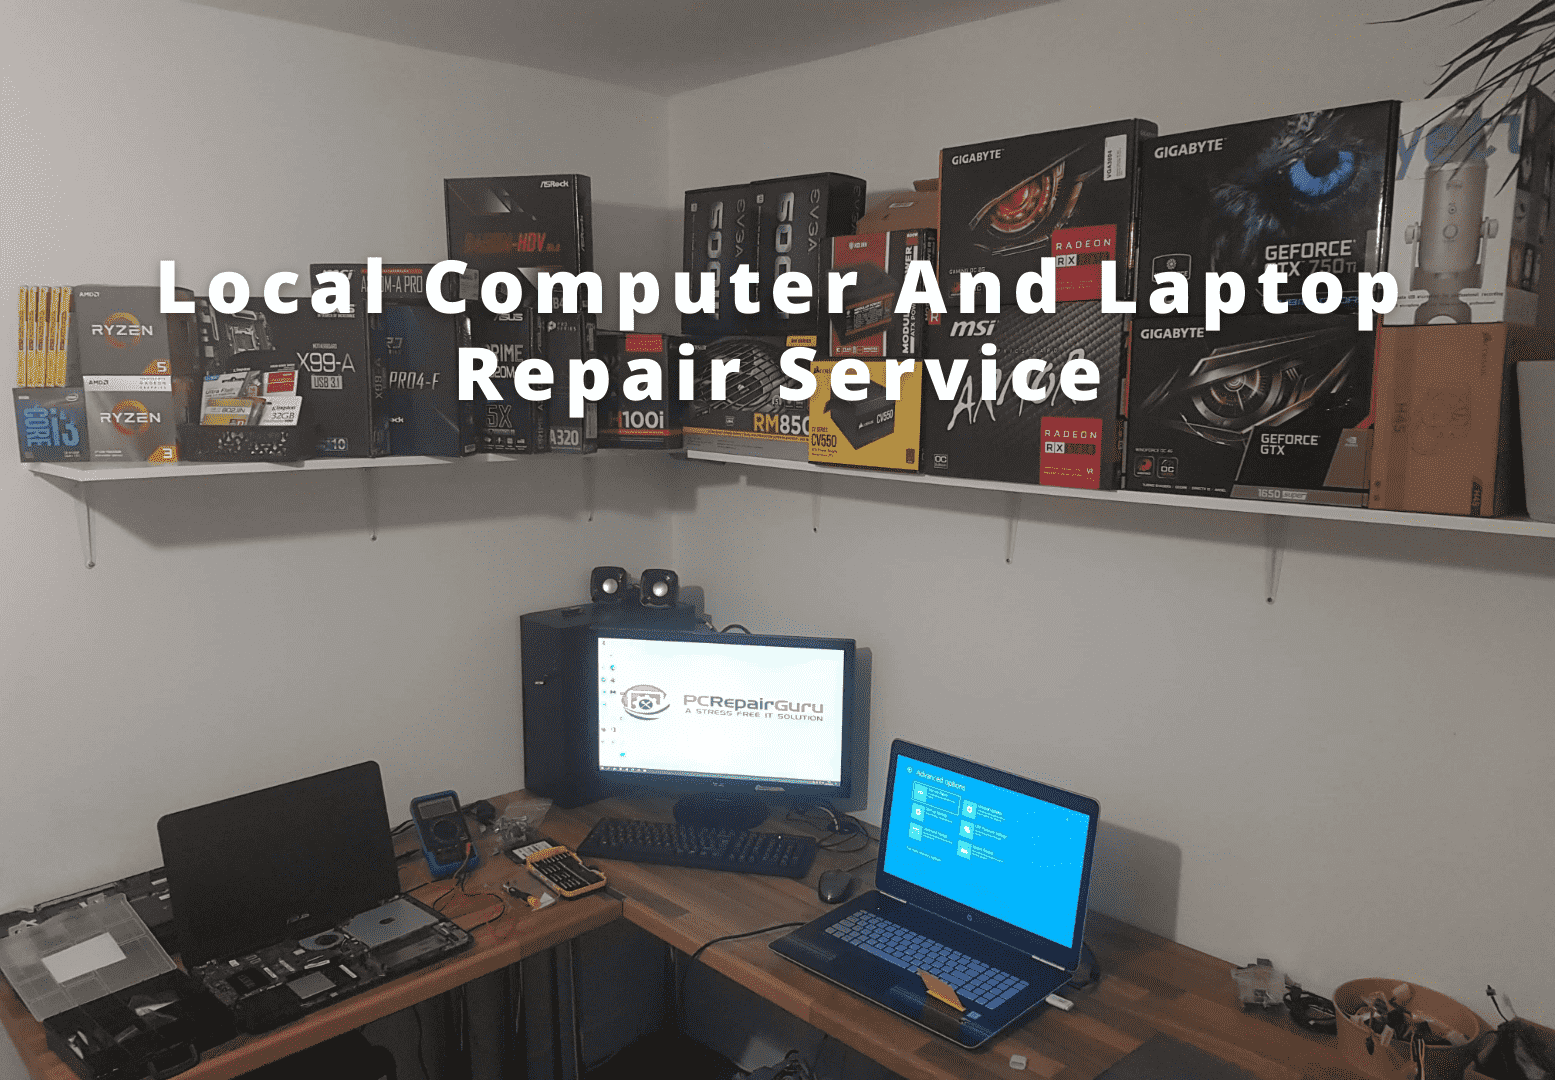 Local Computer And Laptop Repair Service